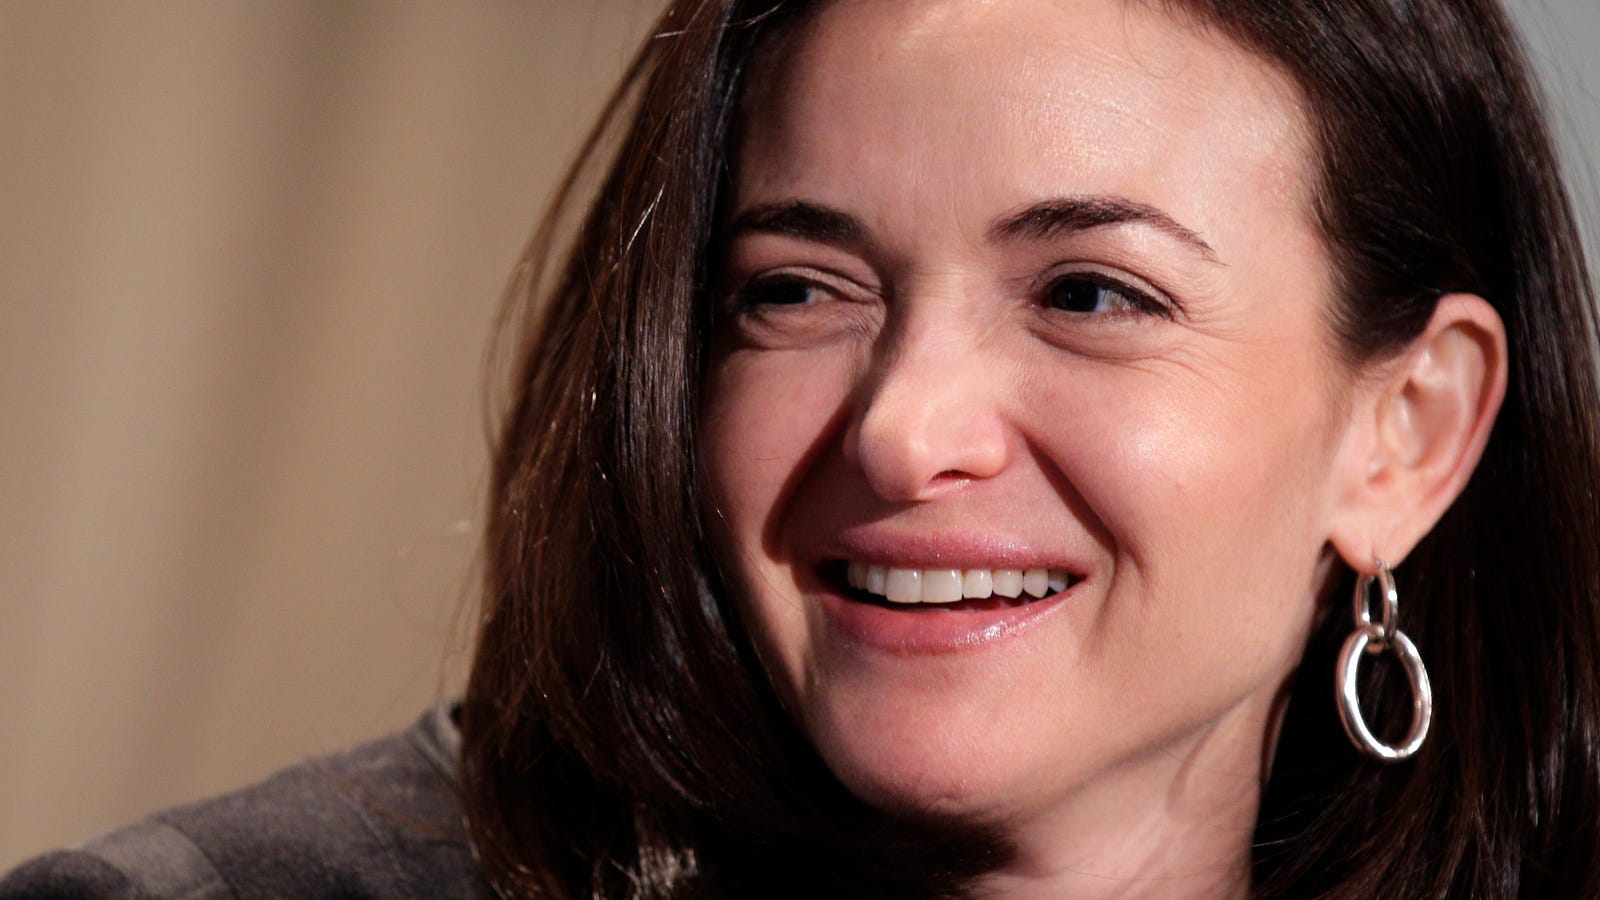 Sheryl Sandberg's Request for Info on George Soros Was 'Entirely Appropriate,' Facebook Board Says